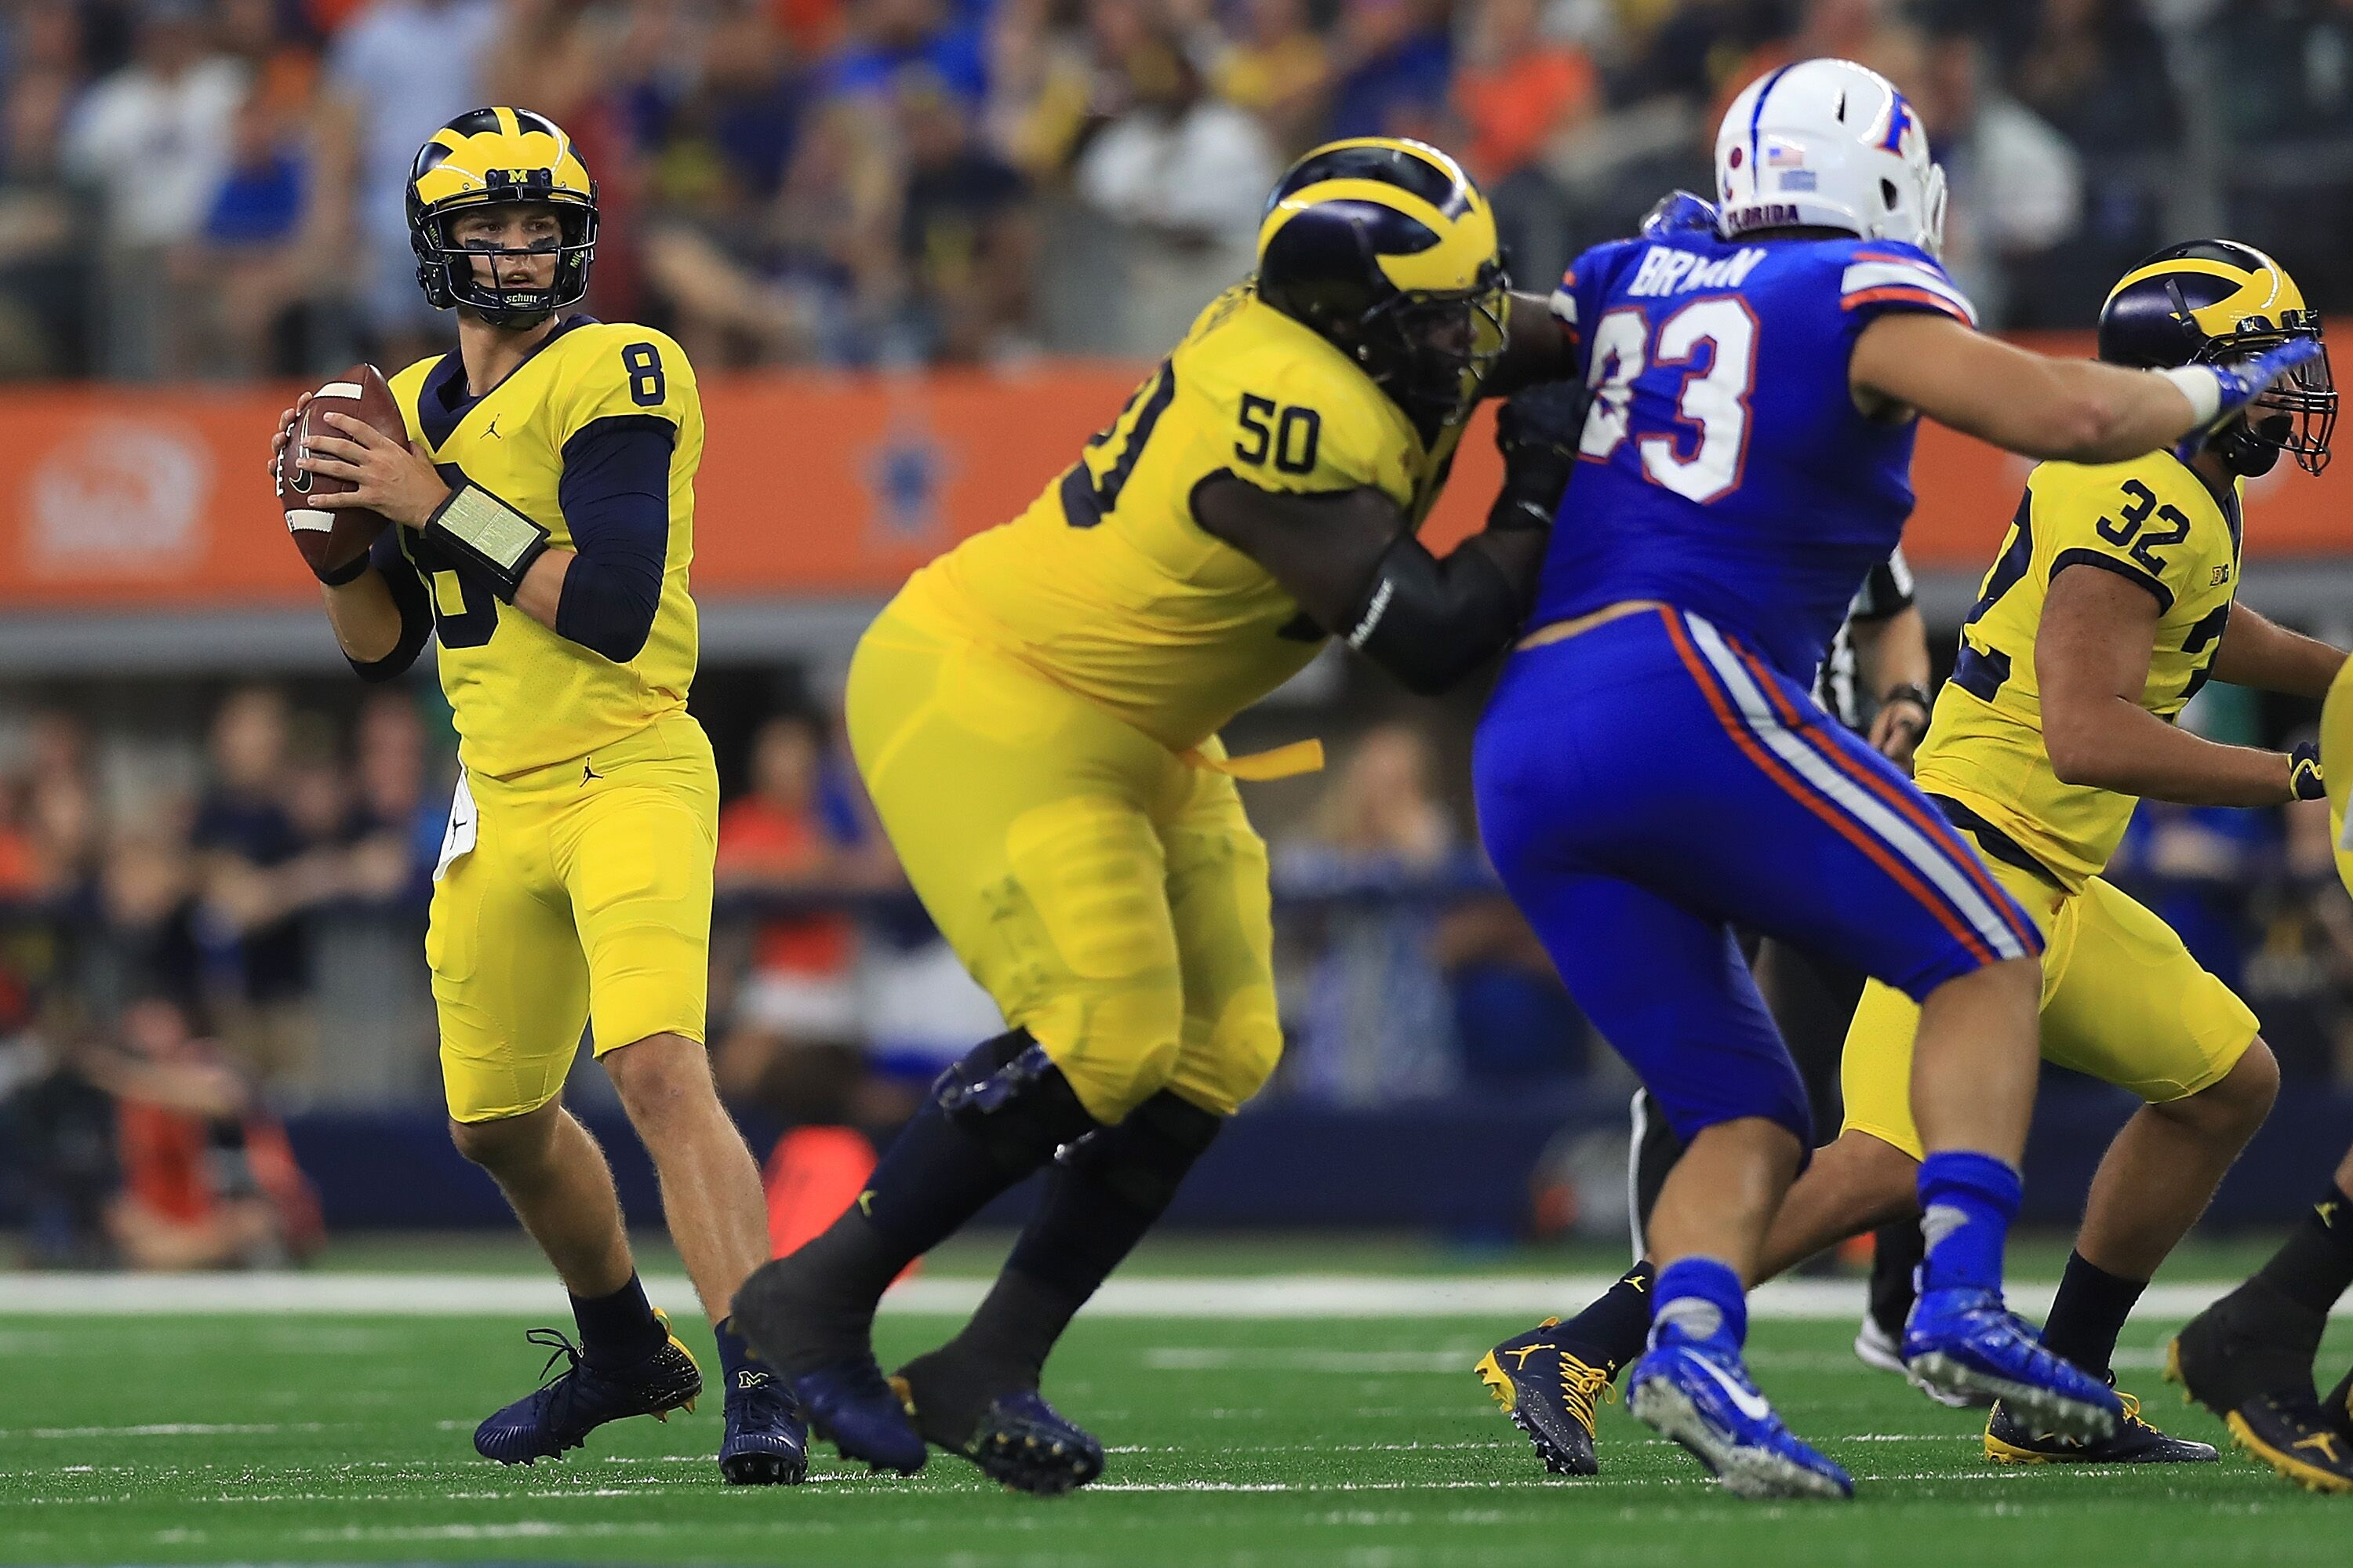 841980922-florida-v-michigan.jpg